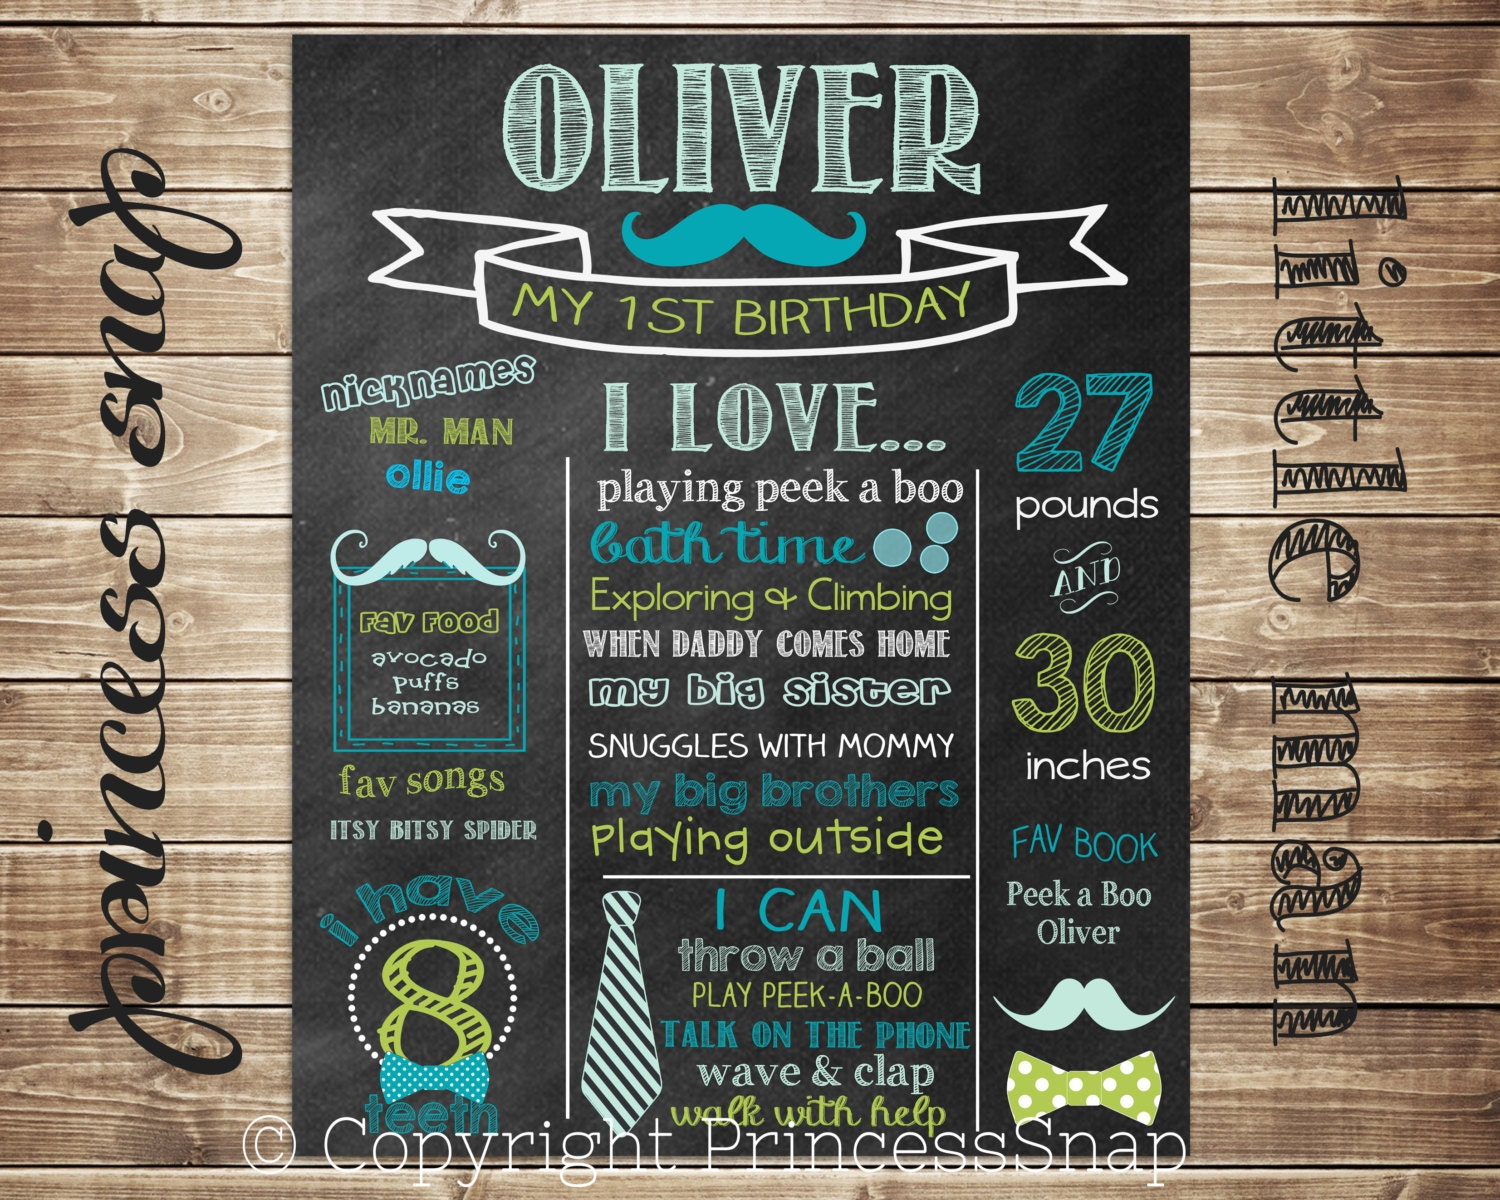 First Birthday Chalkboard Mustache & Bow Ties Customized. Resignation Letter Template Free. Make How To List Volunteer Work On Resume Sample. Ribbon Cutting Invitation Template. Make It Resume Templates. Free Newsletter Template Publisher. Graduation Party Invitations Walmart. Brandeis University Graduate Programs. Foreign Medical Graduates Alternative Careers